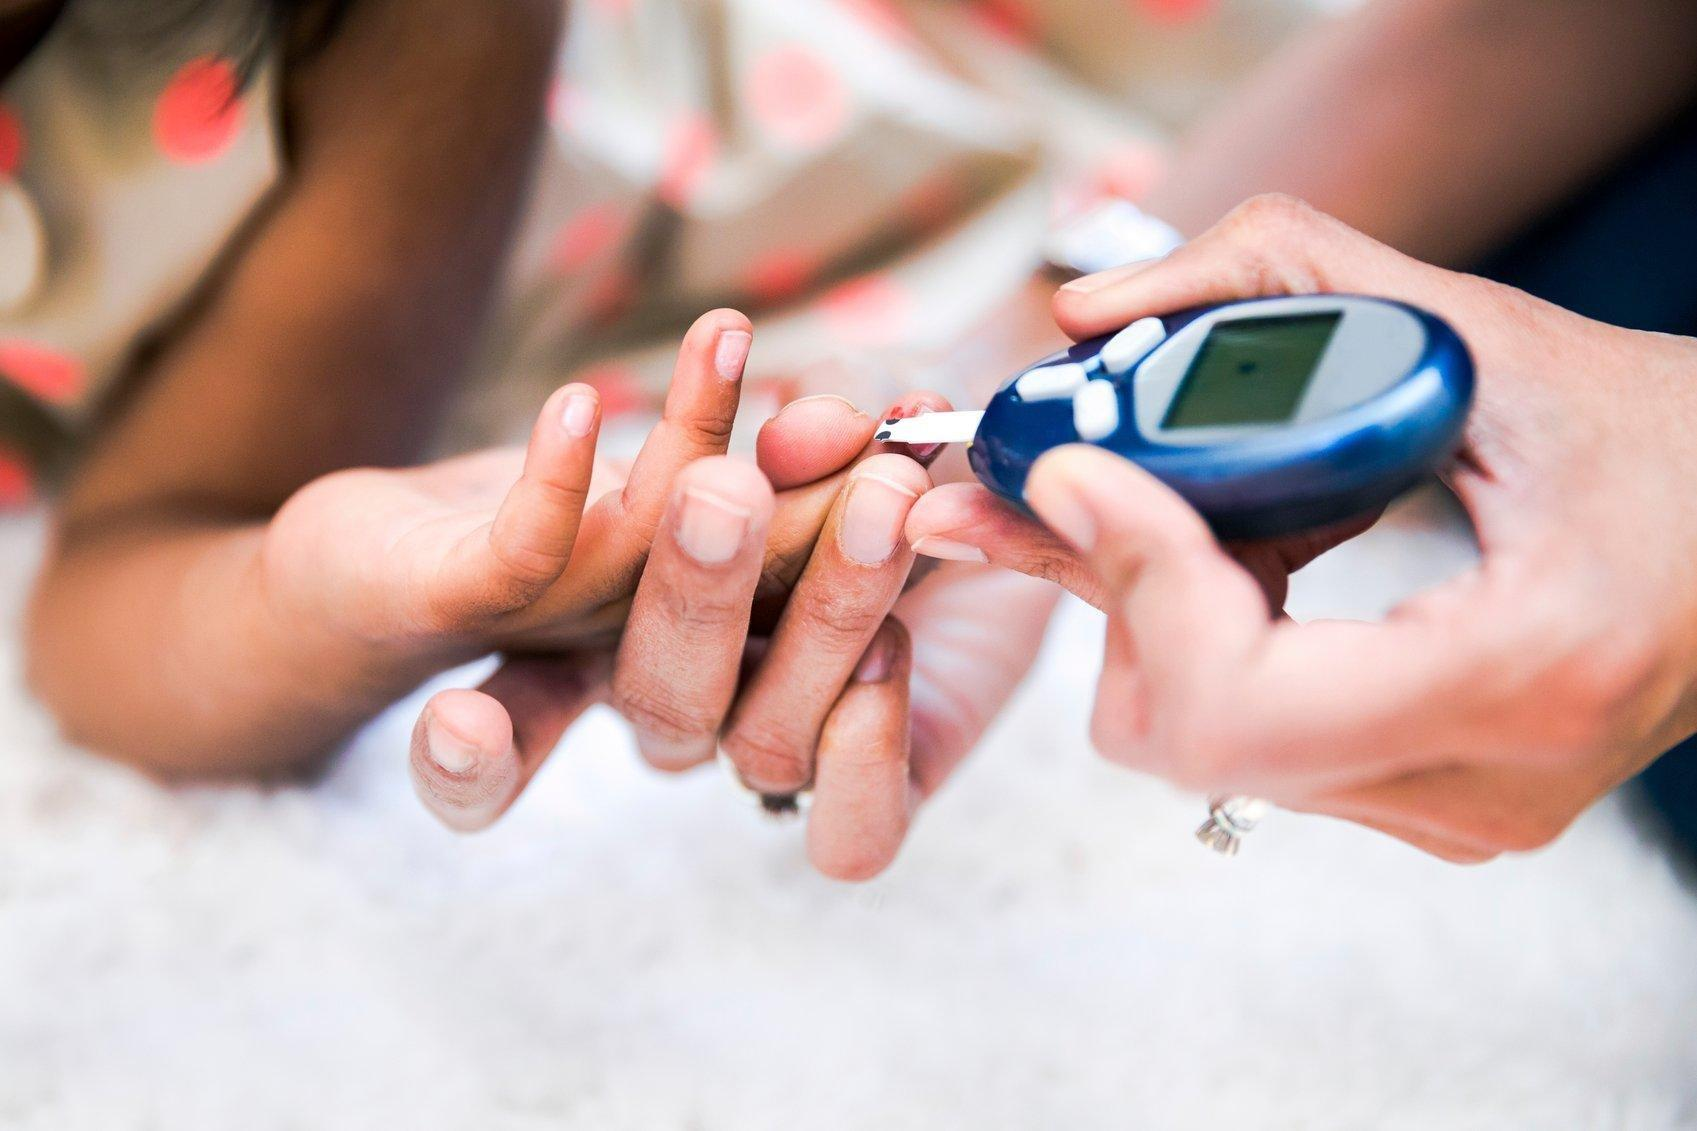 What Is The Difference Between Type One Diabetes And Type Two Diabetes?